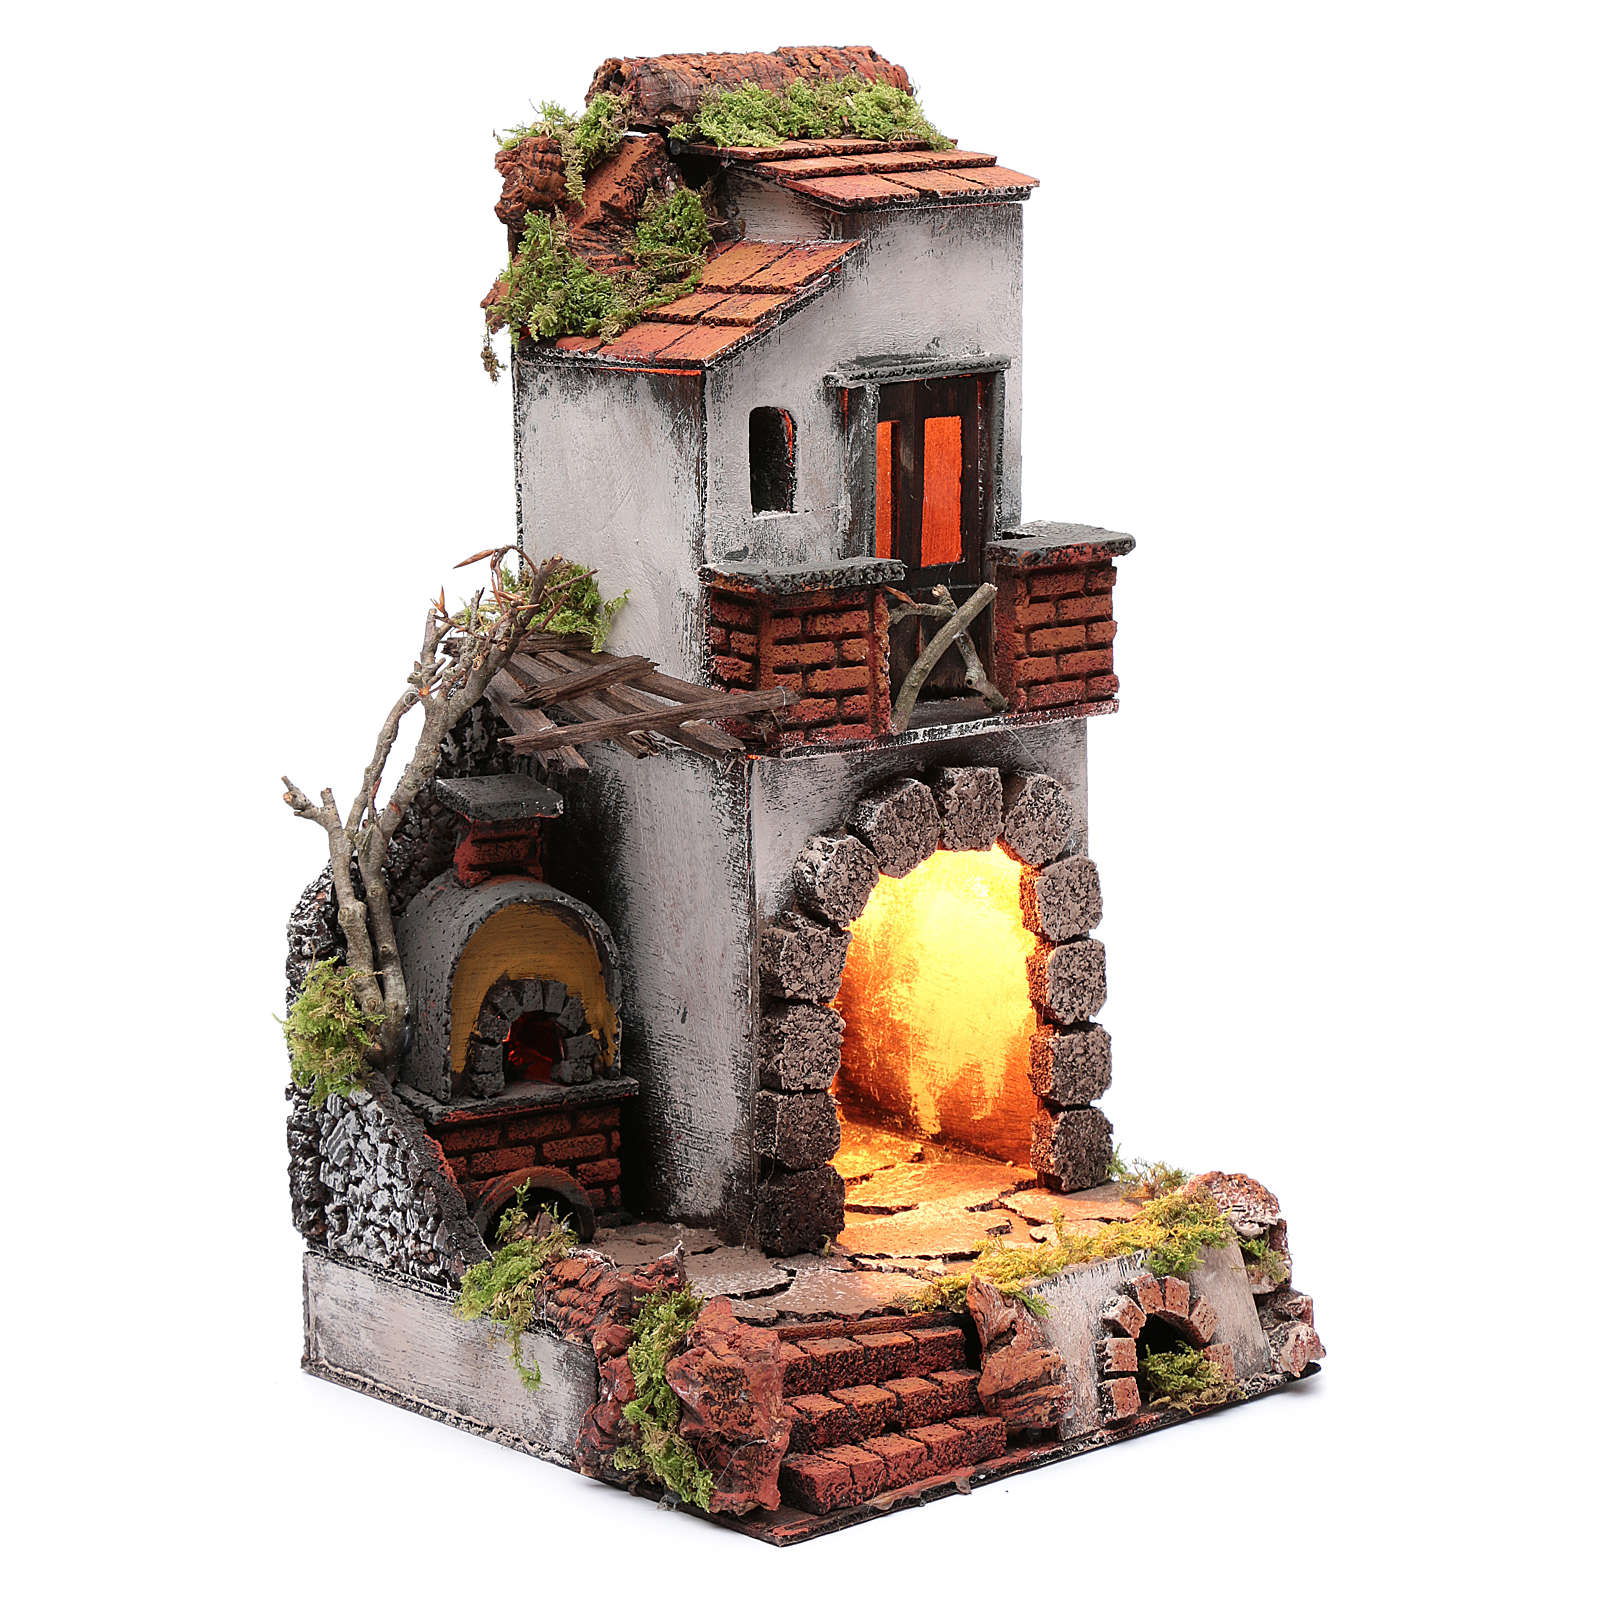 Neapolitan nativity scene setting composed by house with chimney and lights 4